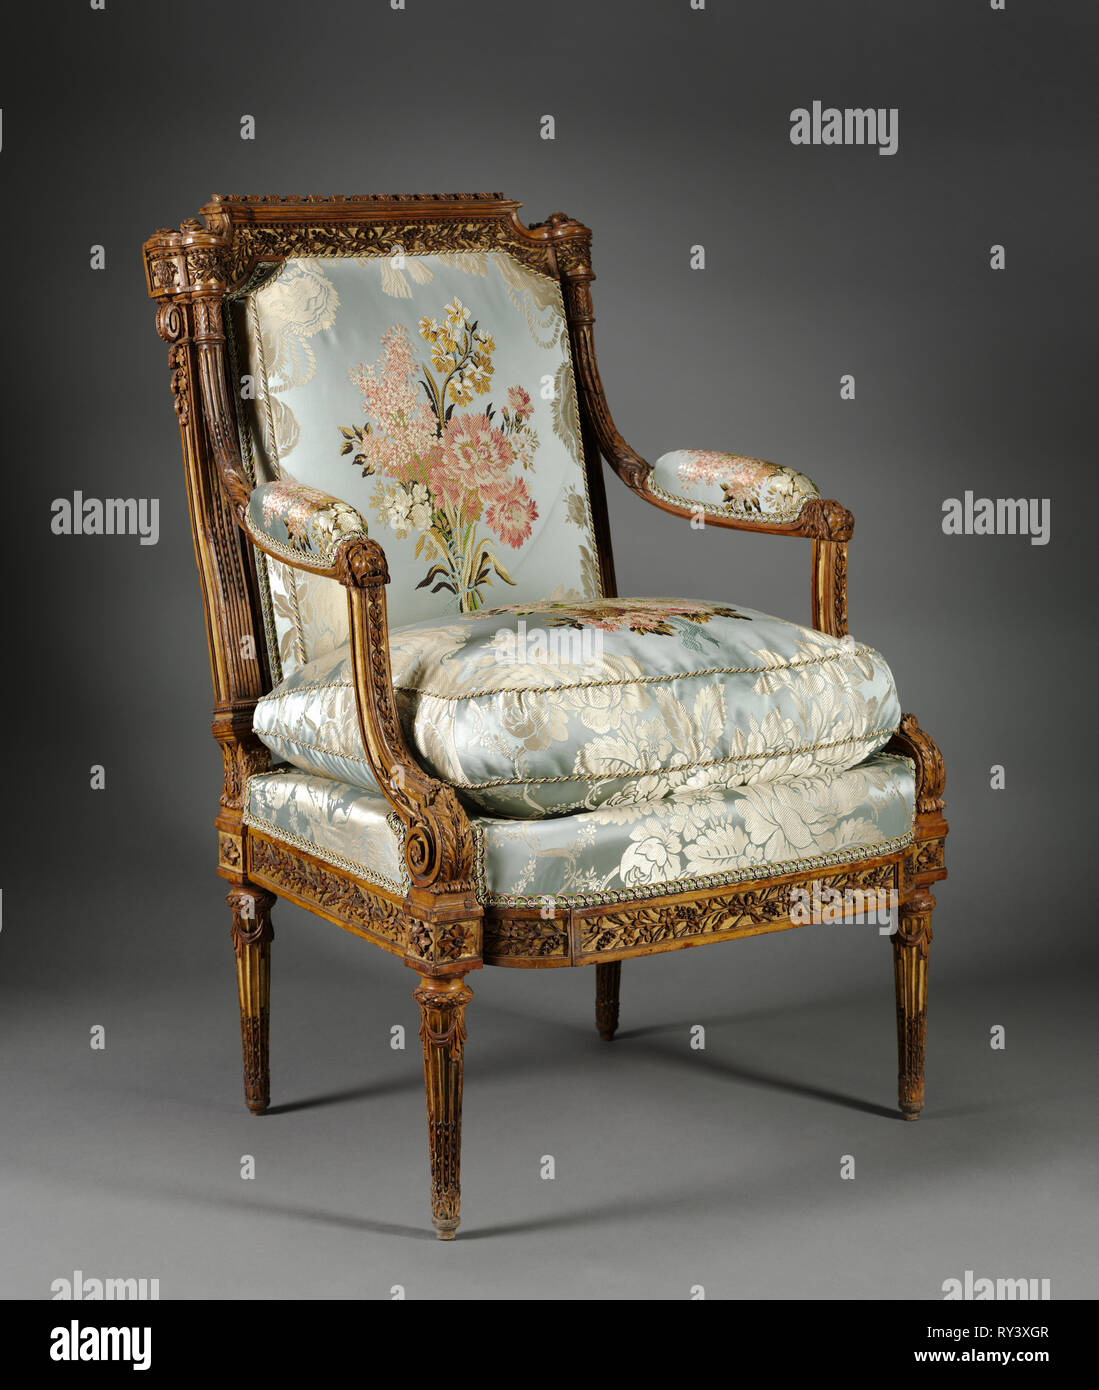 Armchair (Fauteuil), c. 1785. Nicolas-Denis Delaisement (French). Boxwood ; overall: 98.2 x 69.9 x 68.3 cm (38 11/16 x 27 1/2 x 26 7/8 in Stock Photo